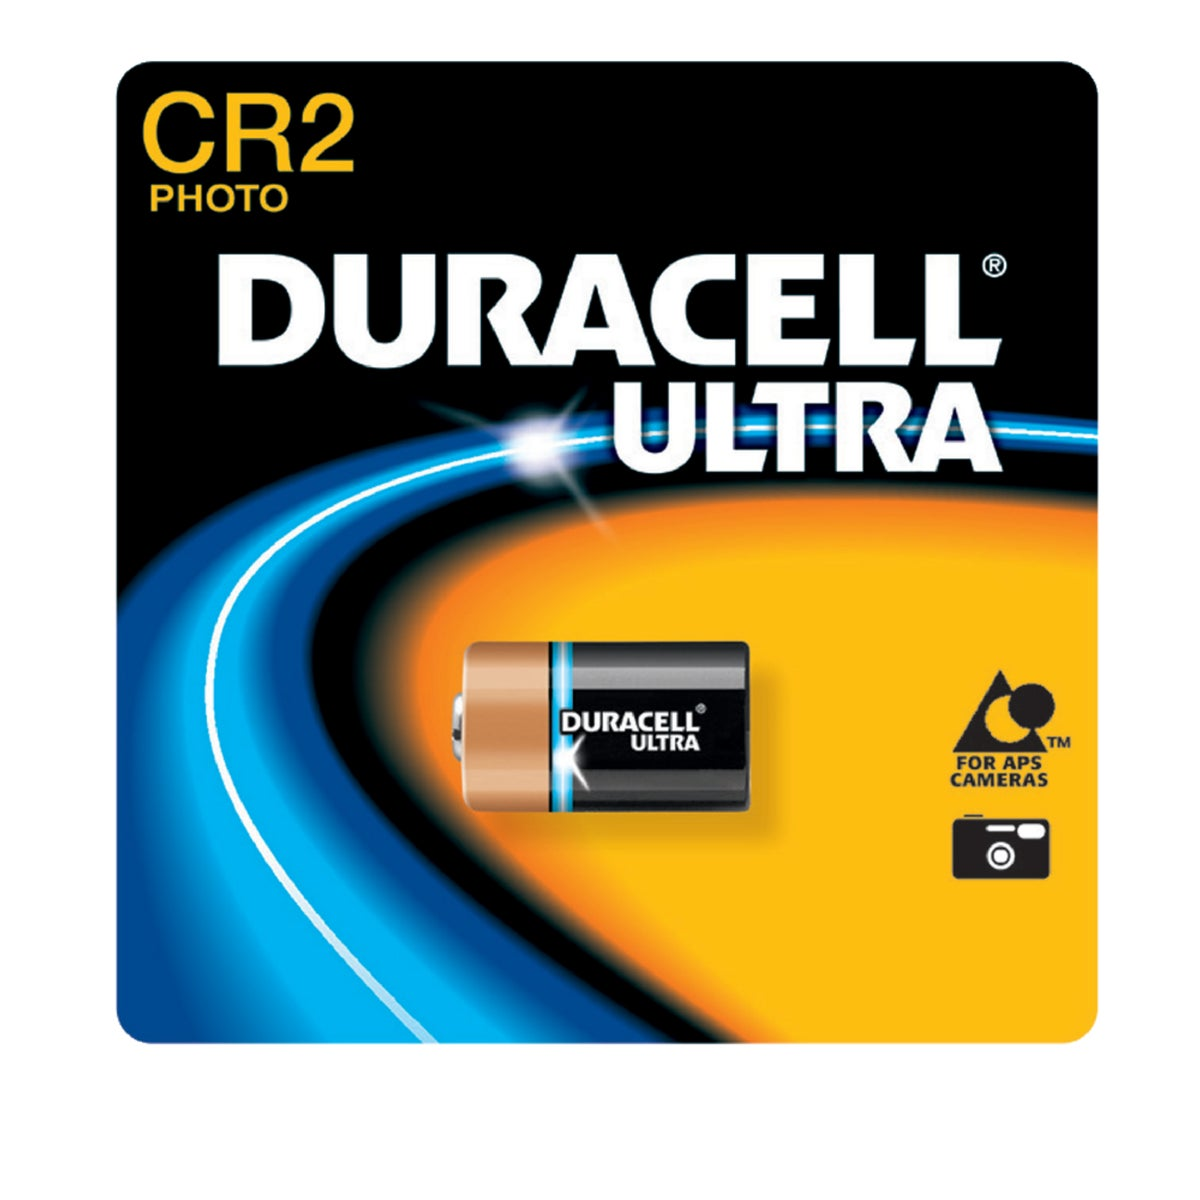 CR2 3V PHOTO BATTERY - 16515 by P & G  Duracell